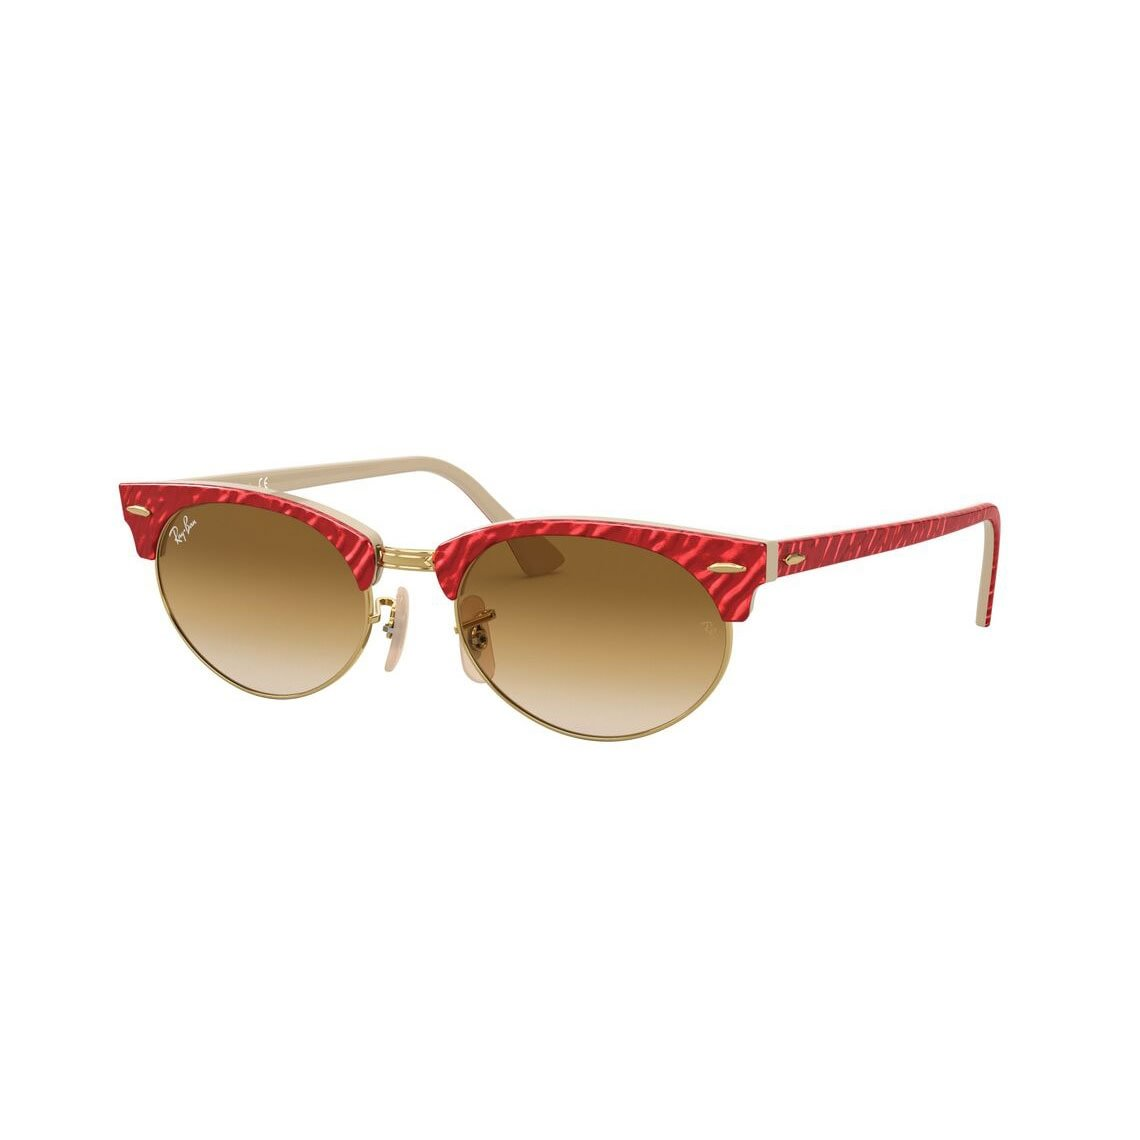 Ray-Ban Clubmaster Oval RB3946 130851 52